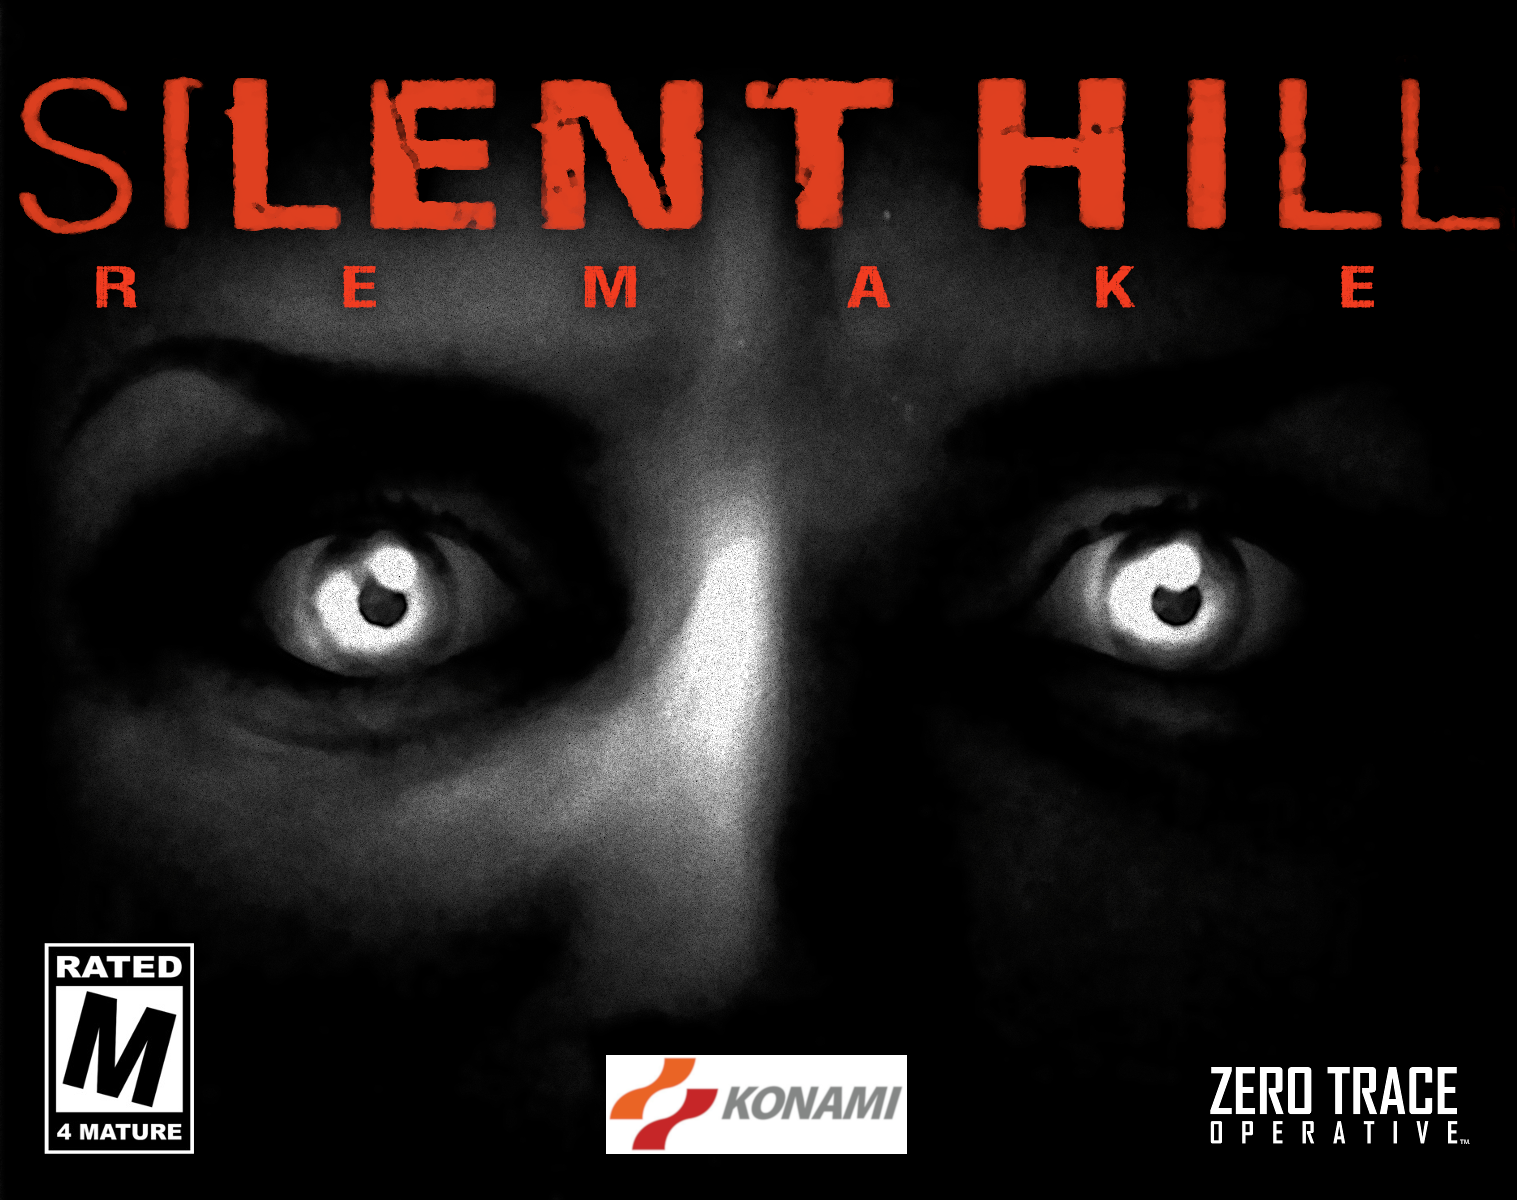 SILENT HILL: Remake (Concept)